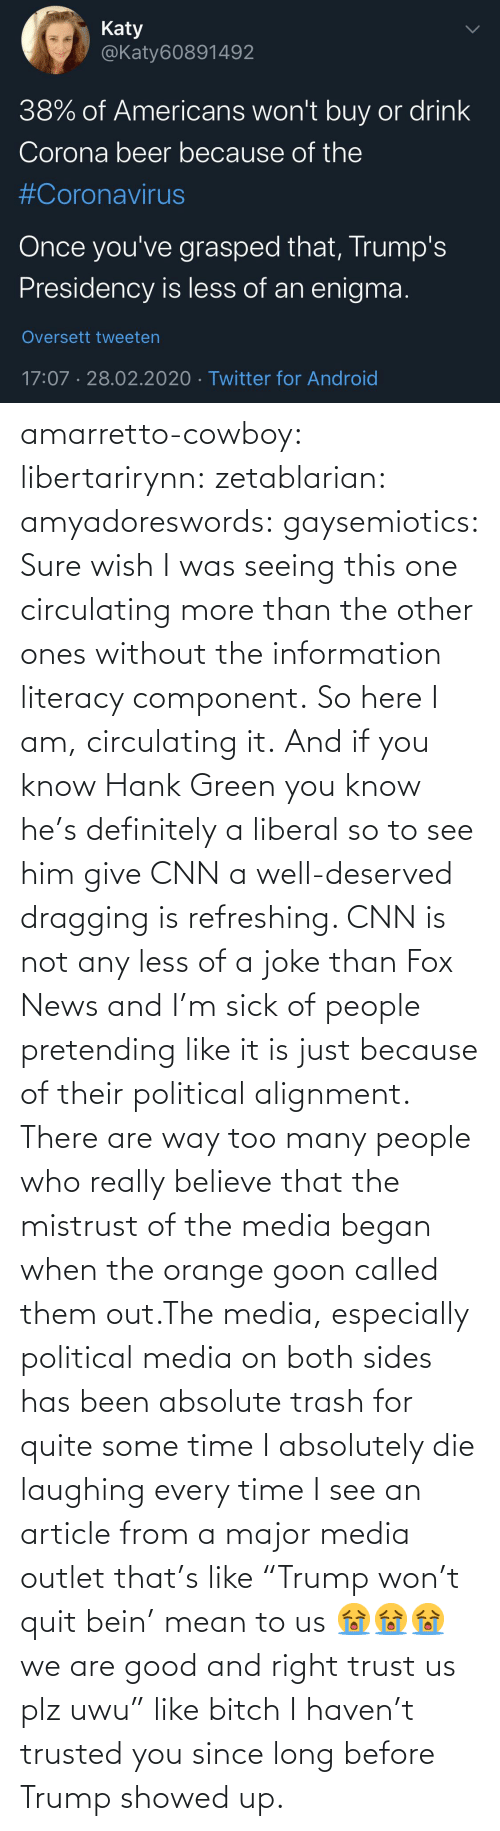 "Just Because: amarretto-cowboy:  libertarirynn:  zetablarian:  amyadoreswords:   gaysemiotics:       Sure wish I was seeing this one circulating more than the other ones without the information literacy component. So here I am, circulating it.    And if you know Hank Green you know he's definitely a liberal so to see him give CNN a well-deserved dragging is refreshing. CNN is not any less of a joke than Fox News and I'm sick of people pretending like it is just because of their political alignment.   There are way too many people who really believe that the mistrust of the media began when the orange goon called them out.The media, especially political media on both sides has been absolute trash for quite some time   I absolutely die laughing every time I see an article from a major media outlet that's like ""Trump won't quit bein' mean to us 😭😭😭 we are good and right trust us plz uwu"" like bitch I haven't trusted you since long before Trump showed up."